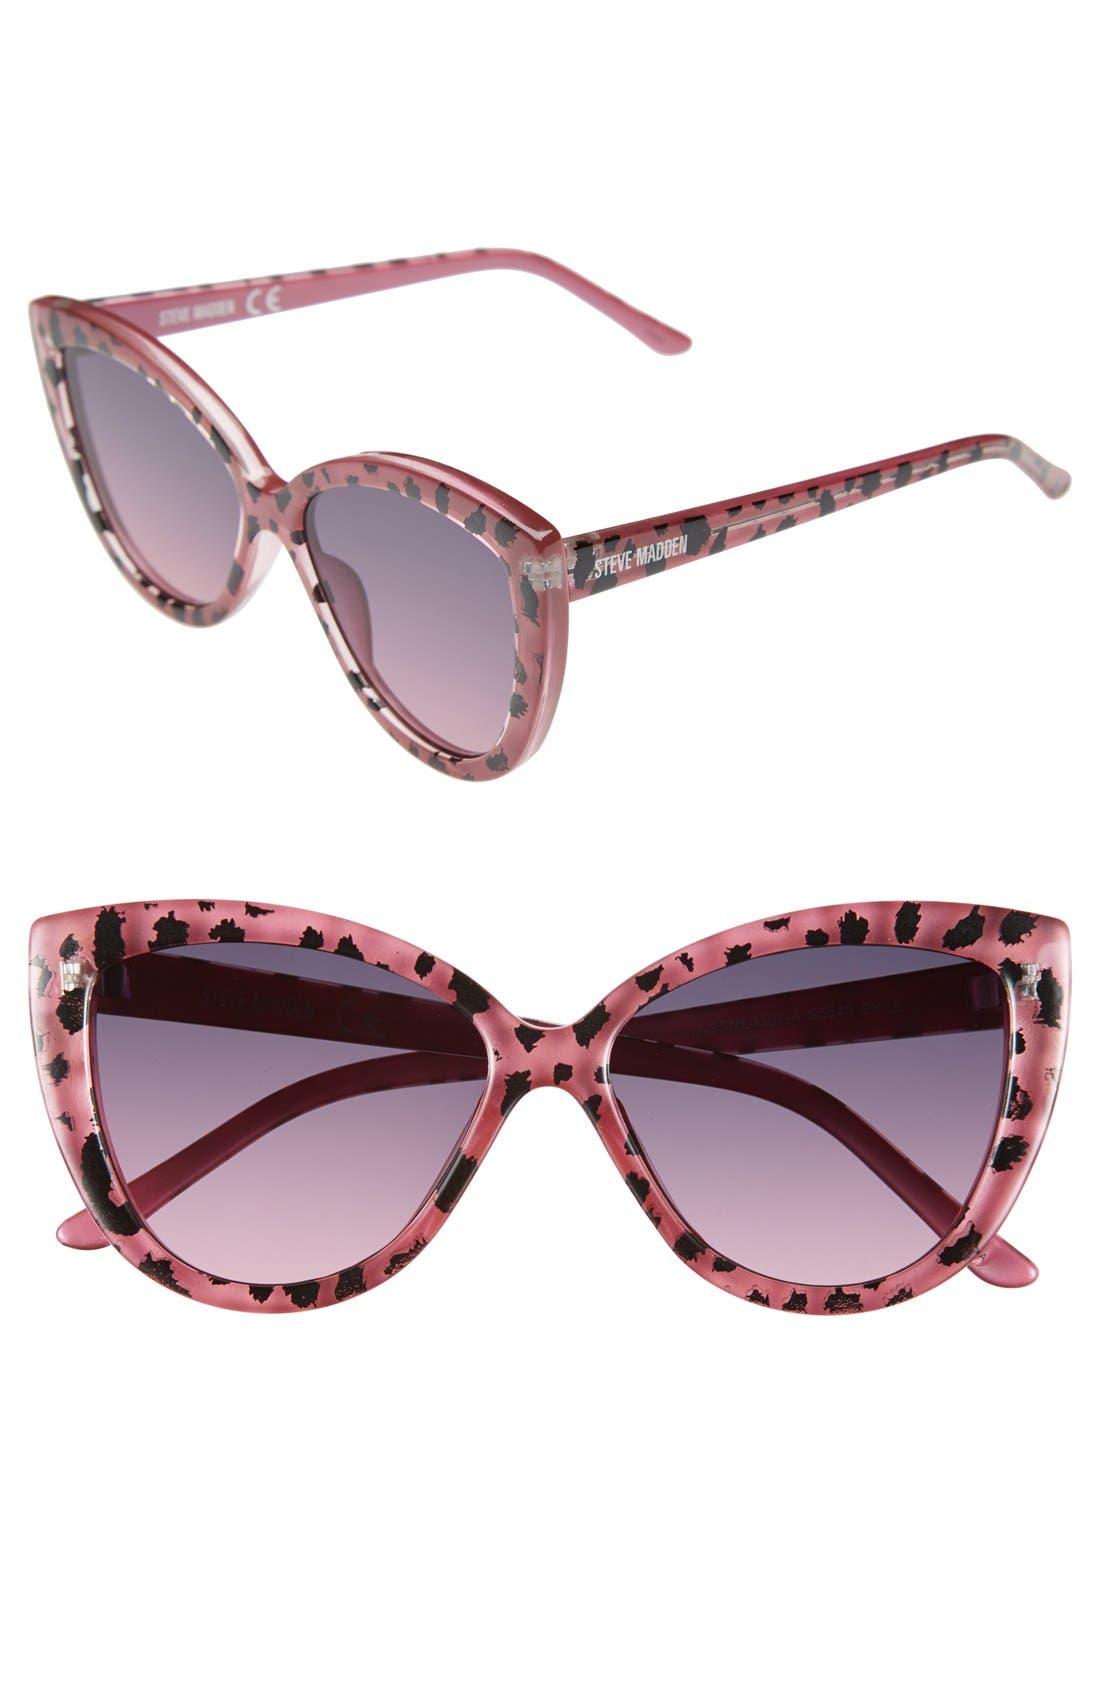 Alternate Image 1 Selected - Steve Madden 54mm Animal Print Cat Eye Sunglasses